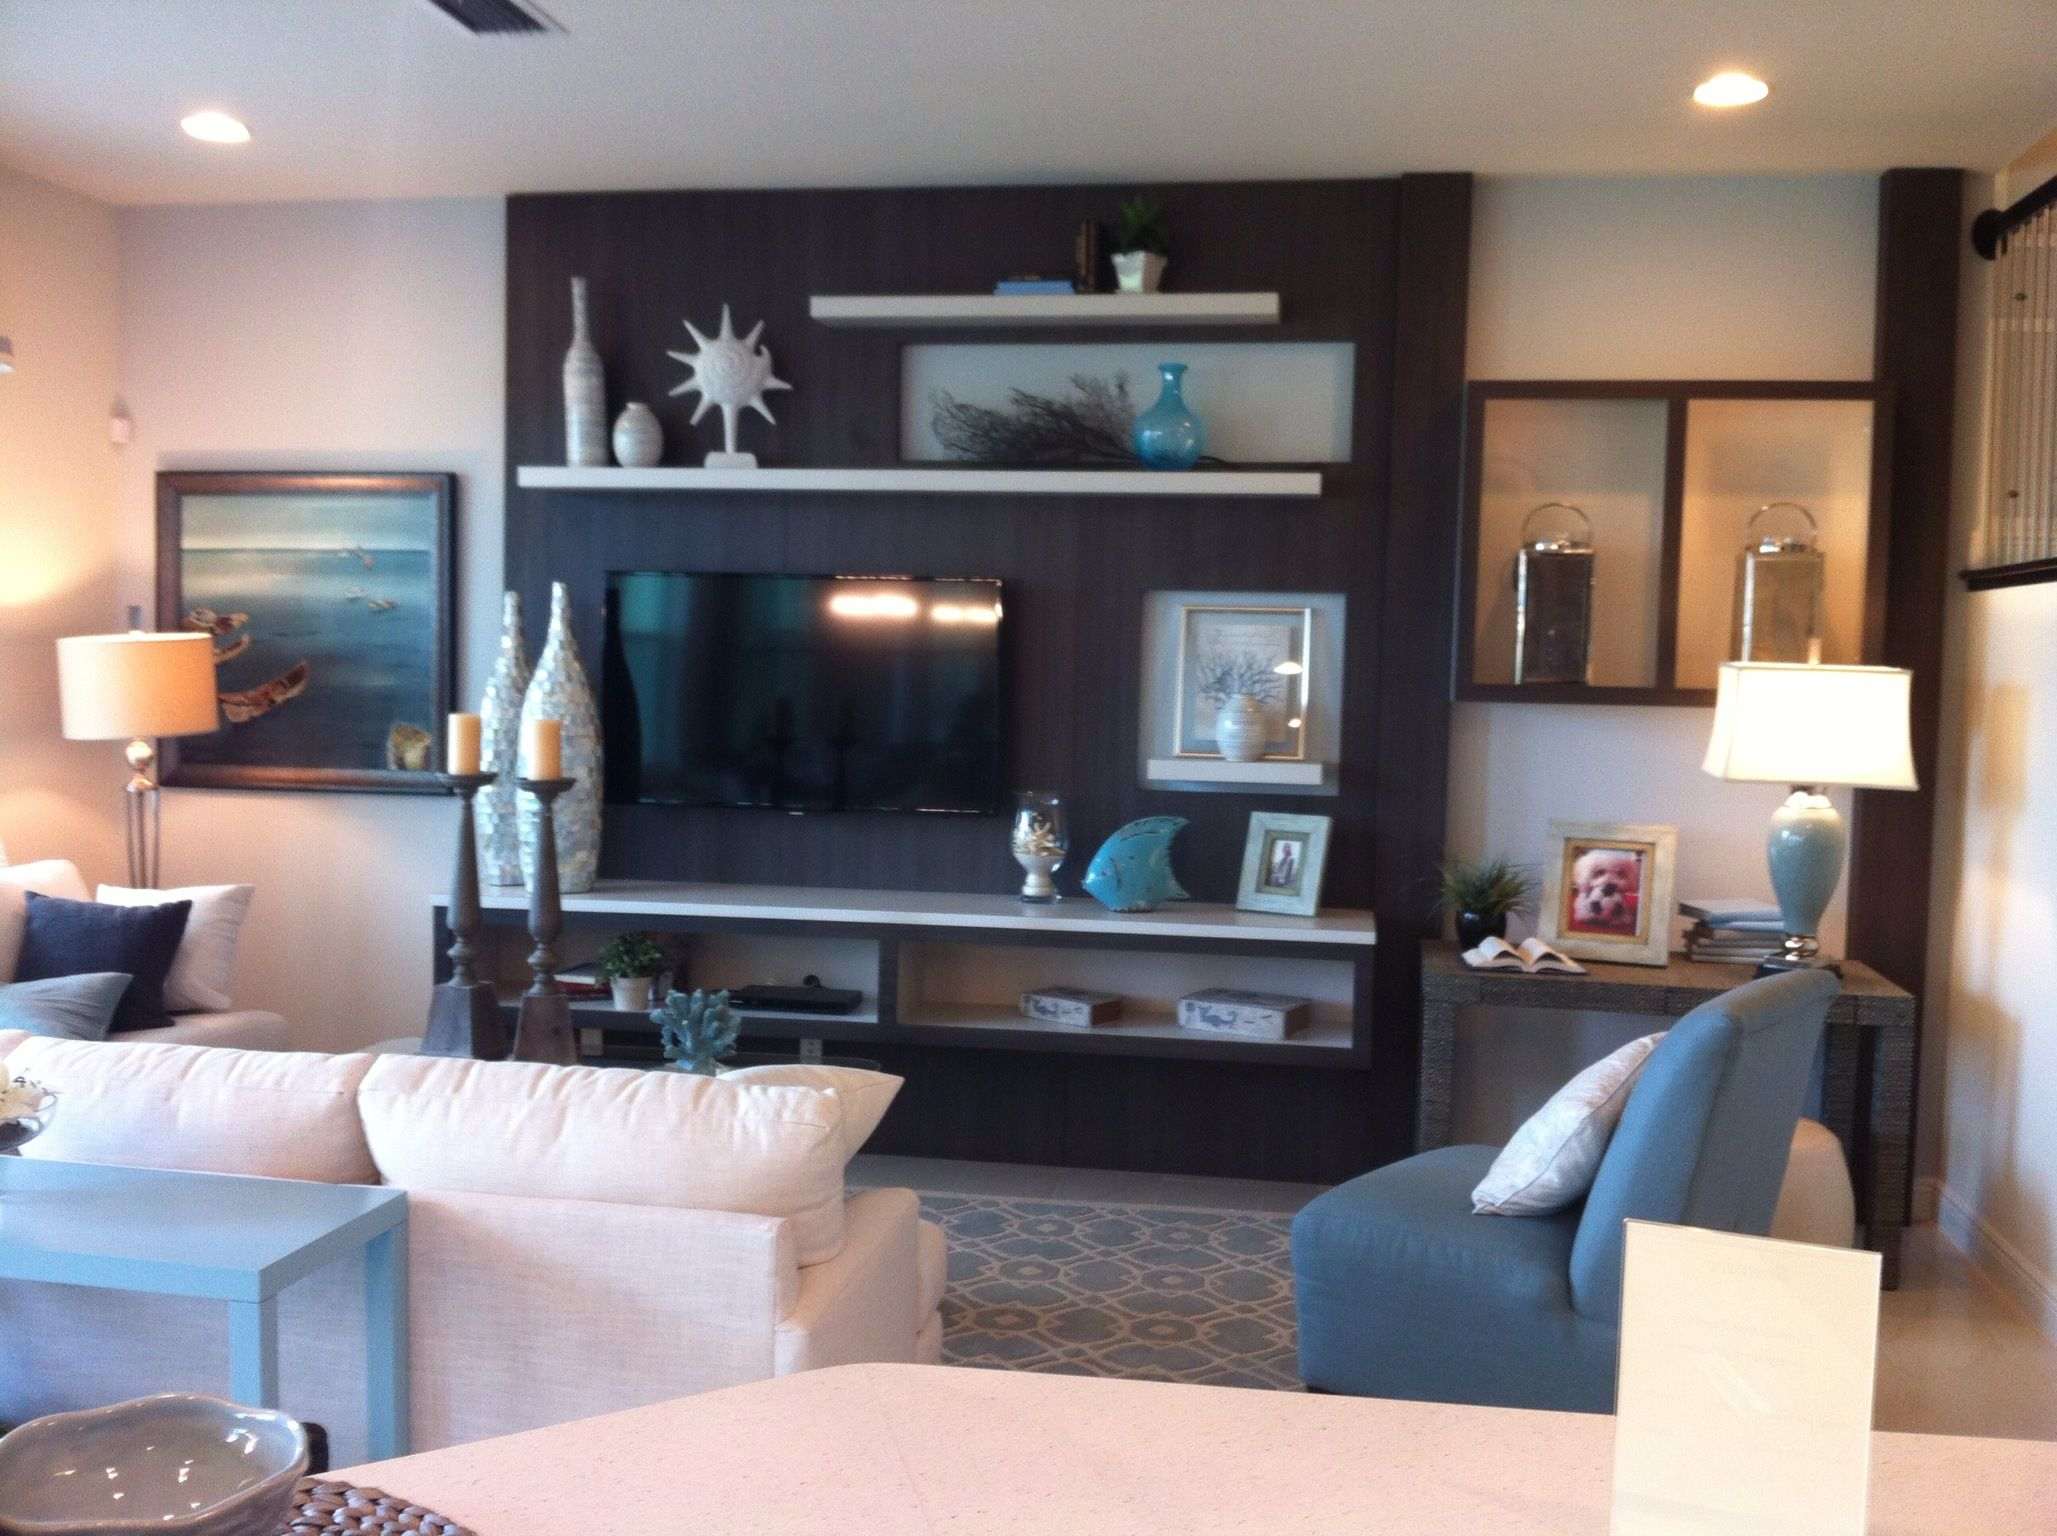 Add An Accent Color In A Large Area Behind The Tv But